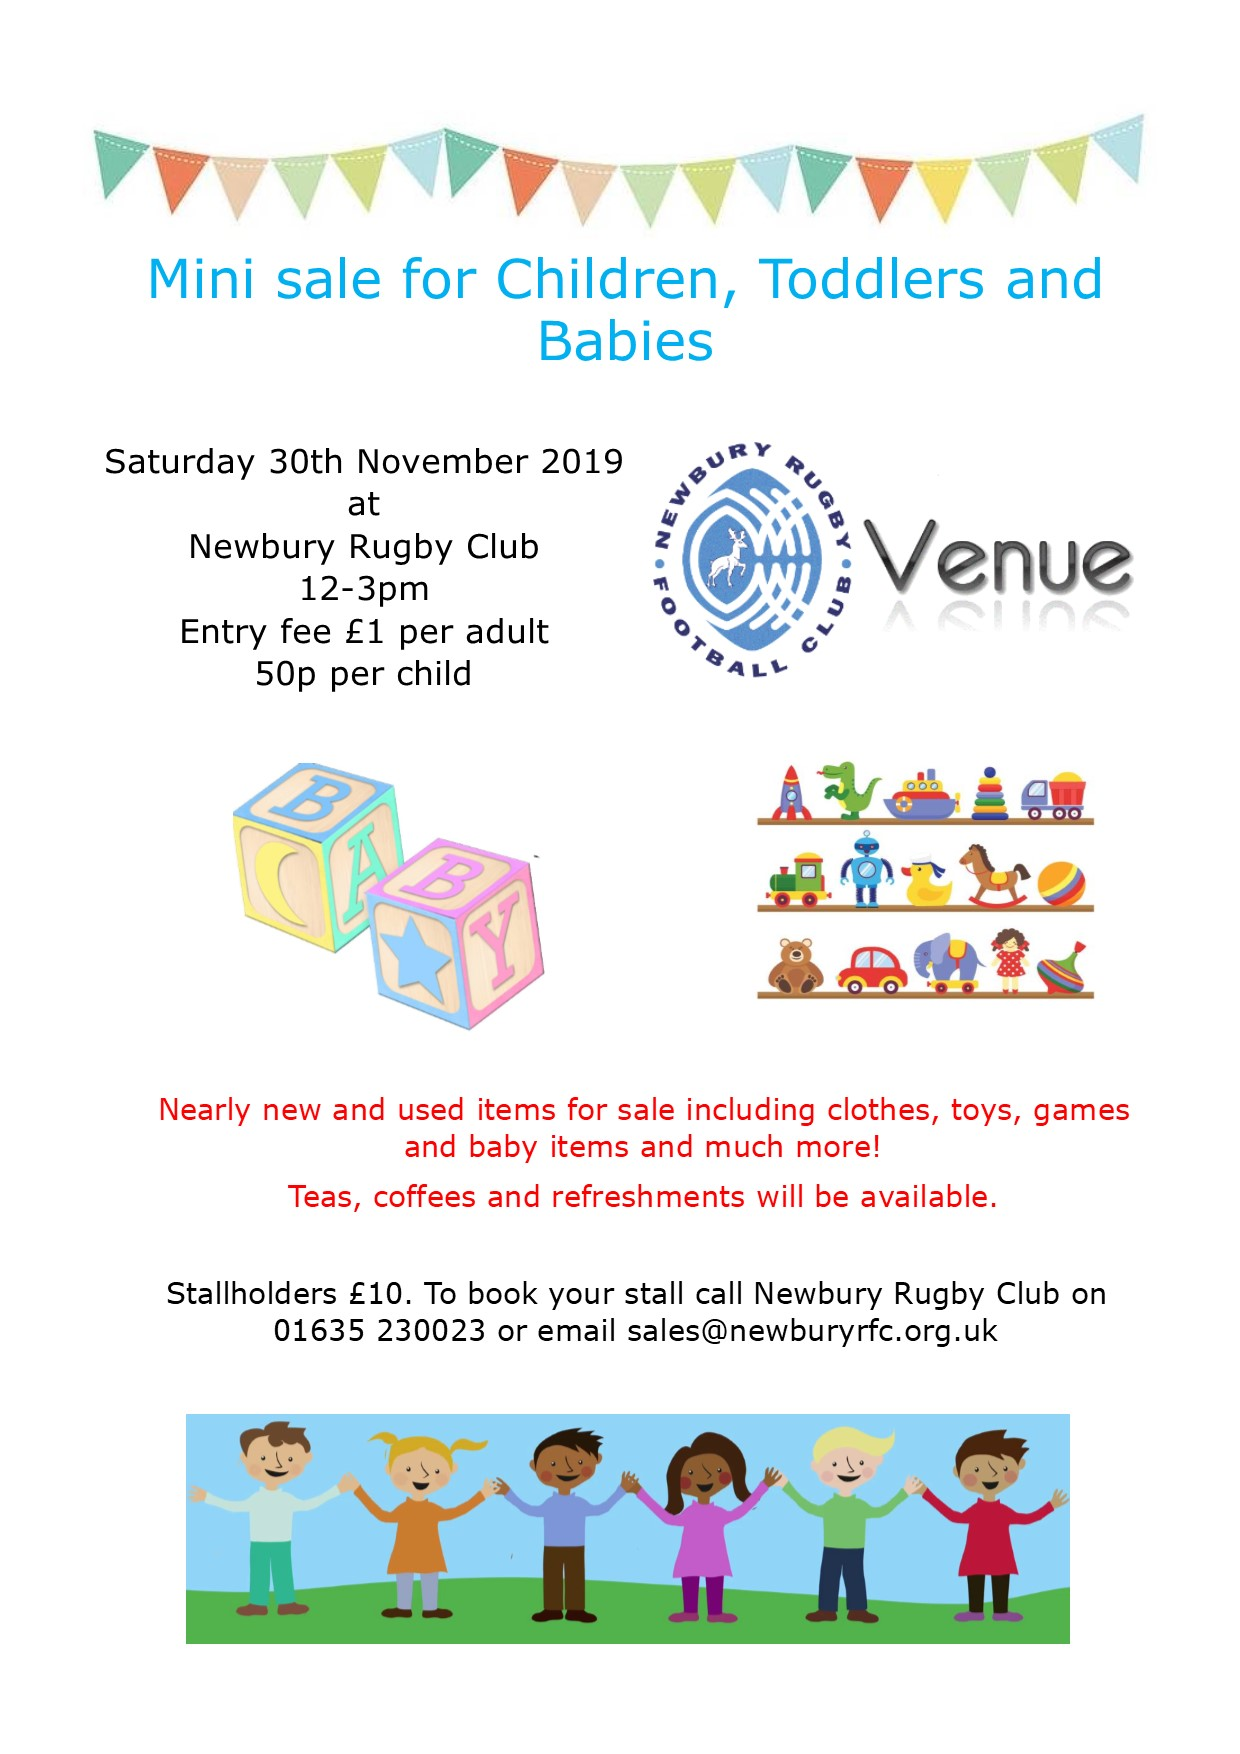 Mini sale for Children, Toddlers and Babies - Saturday 30th